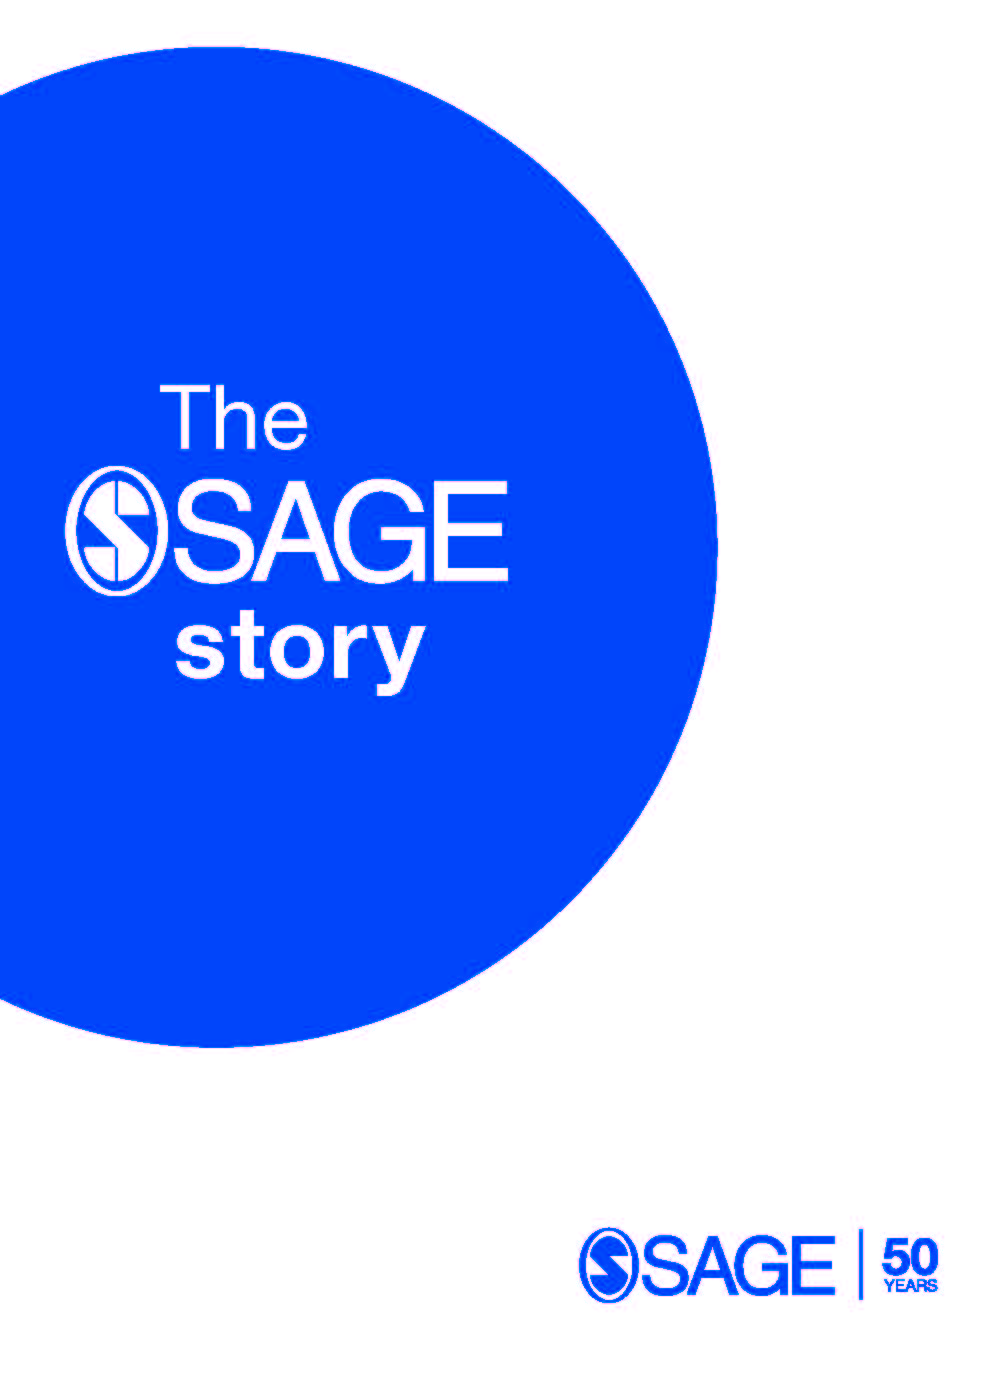 The SAGE Story